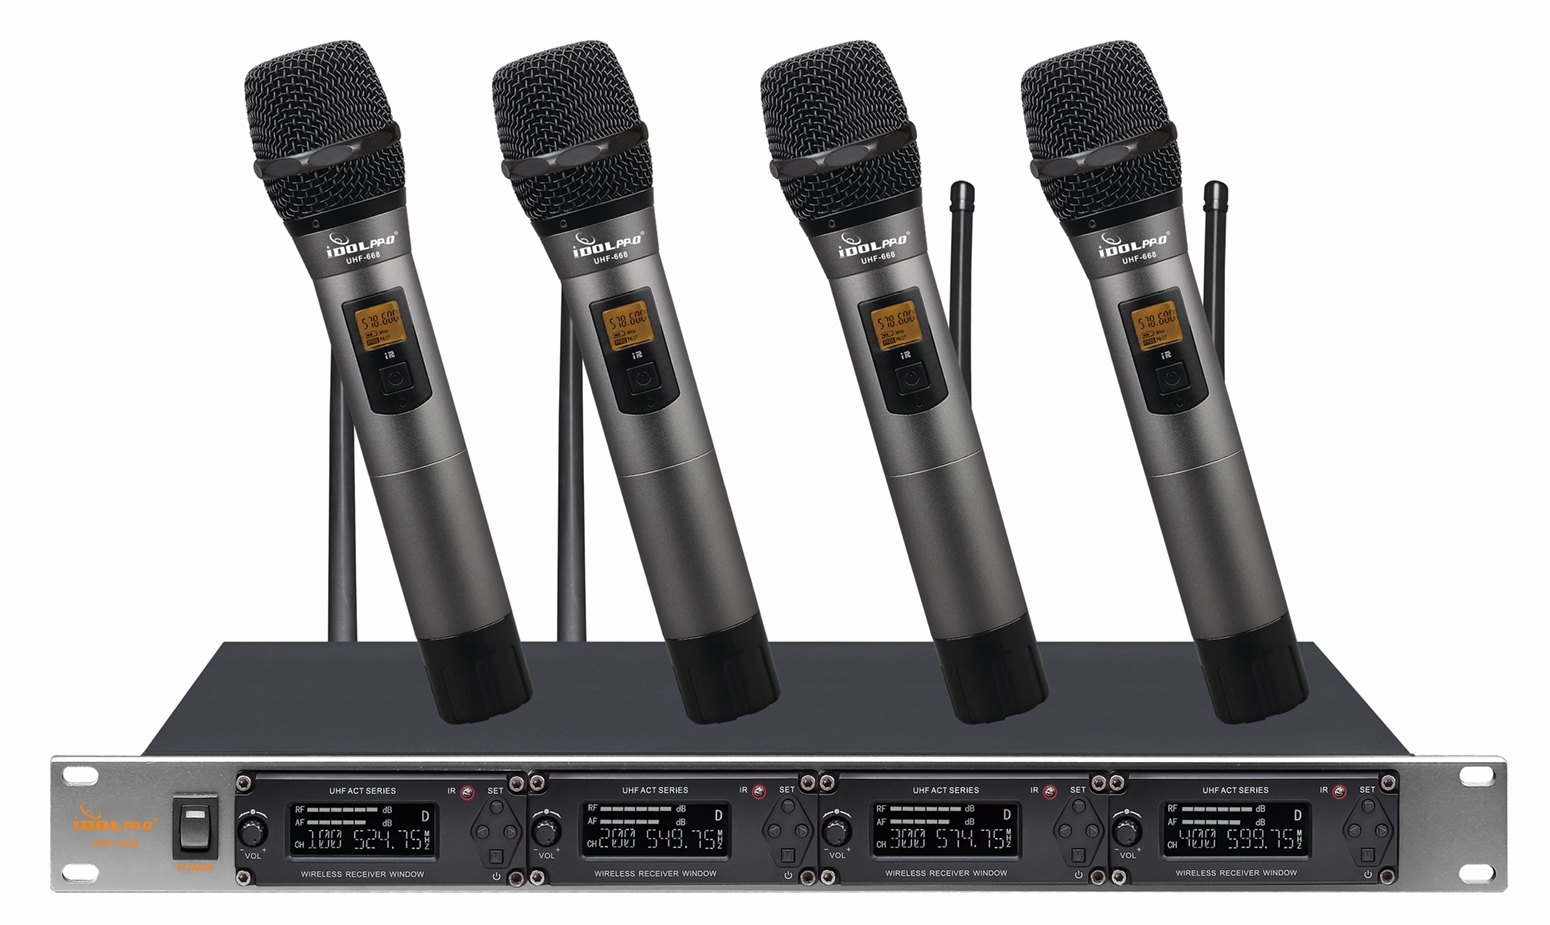 "IDOLpro UHF-668 Professional 4 Channel Wireless With Options Of Handhelds, Lavaliers or Headsets With New Digital Pilot Technology & Vocal Support Microphone System <font color="" orange""><b>NEW 2019 </b></font>"